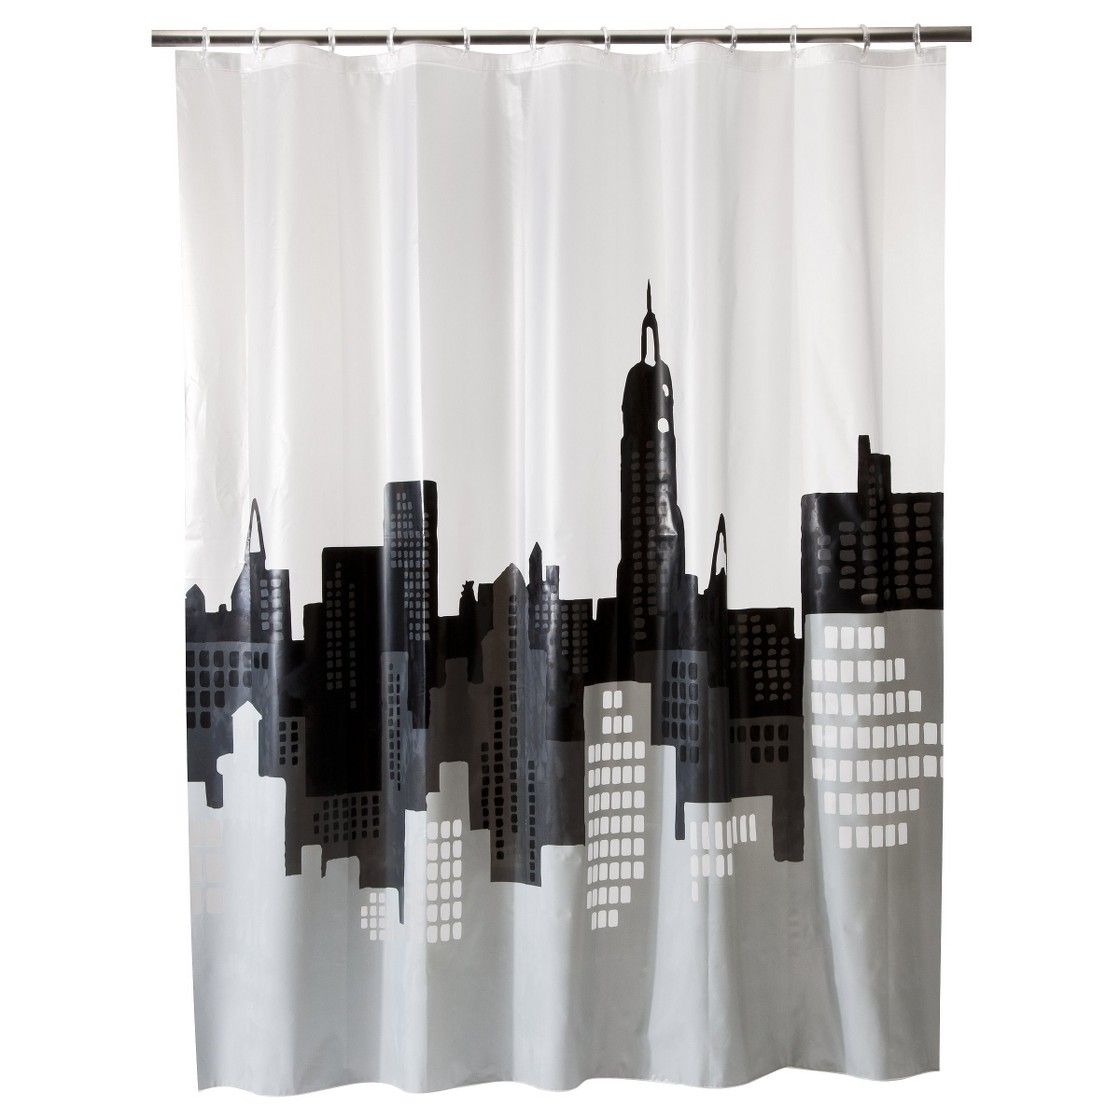 Apartment Room Essentials city scape shower curtain gray/white - room essentials™ | room